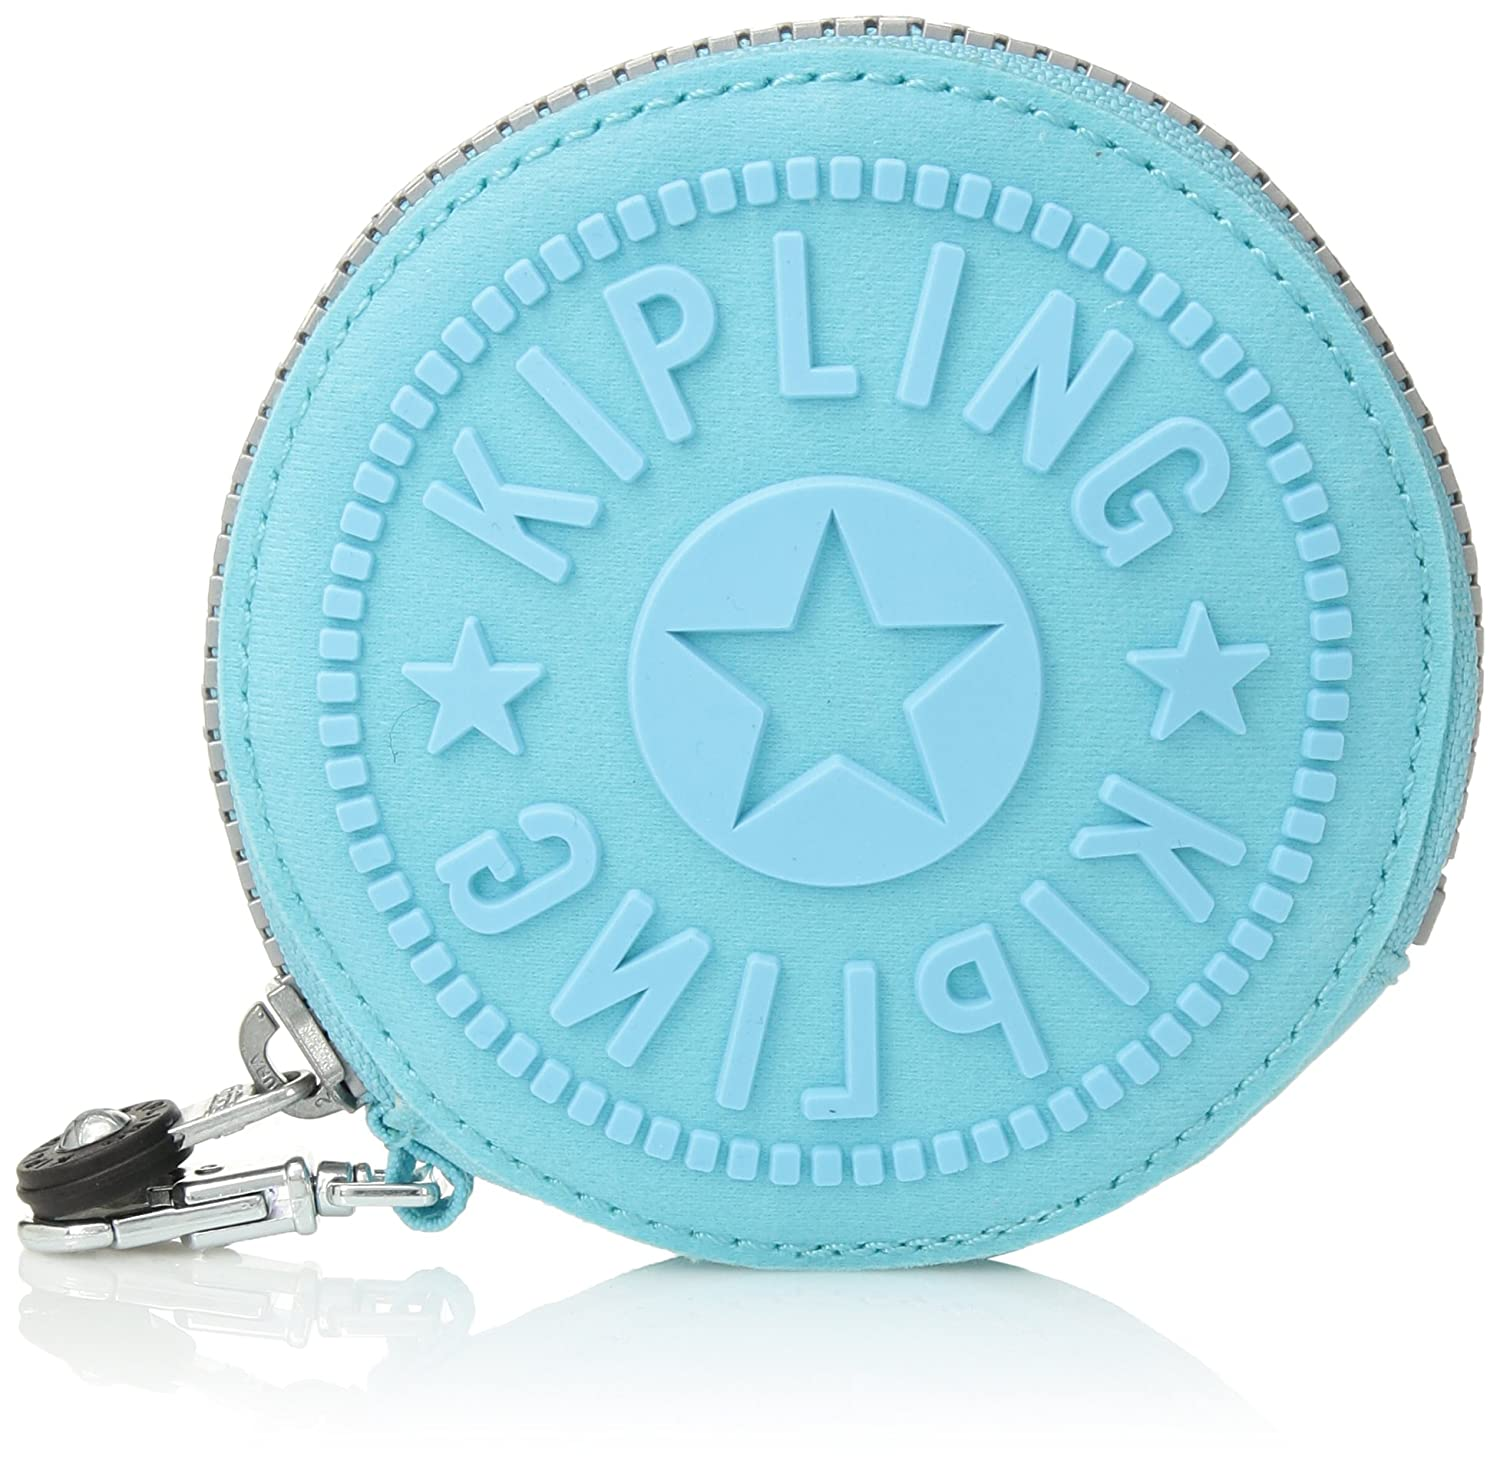 Kipling Marguerite Coin Purse BLUESPLASH AC8094